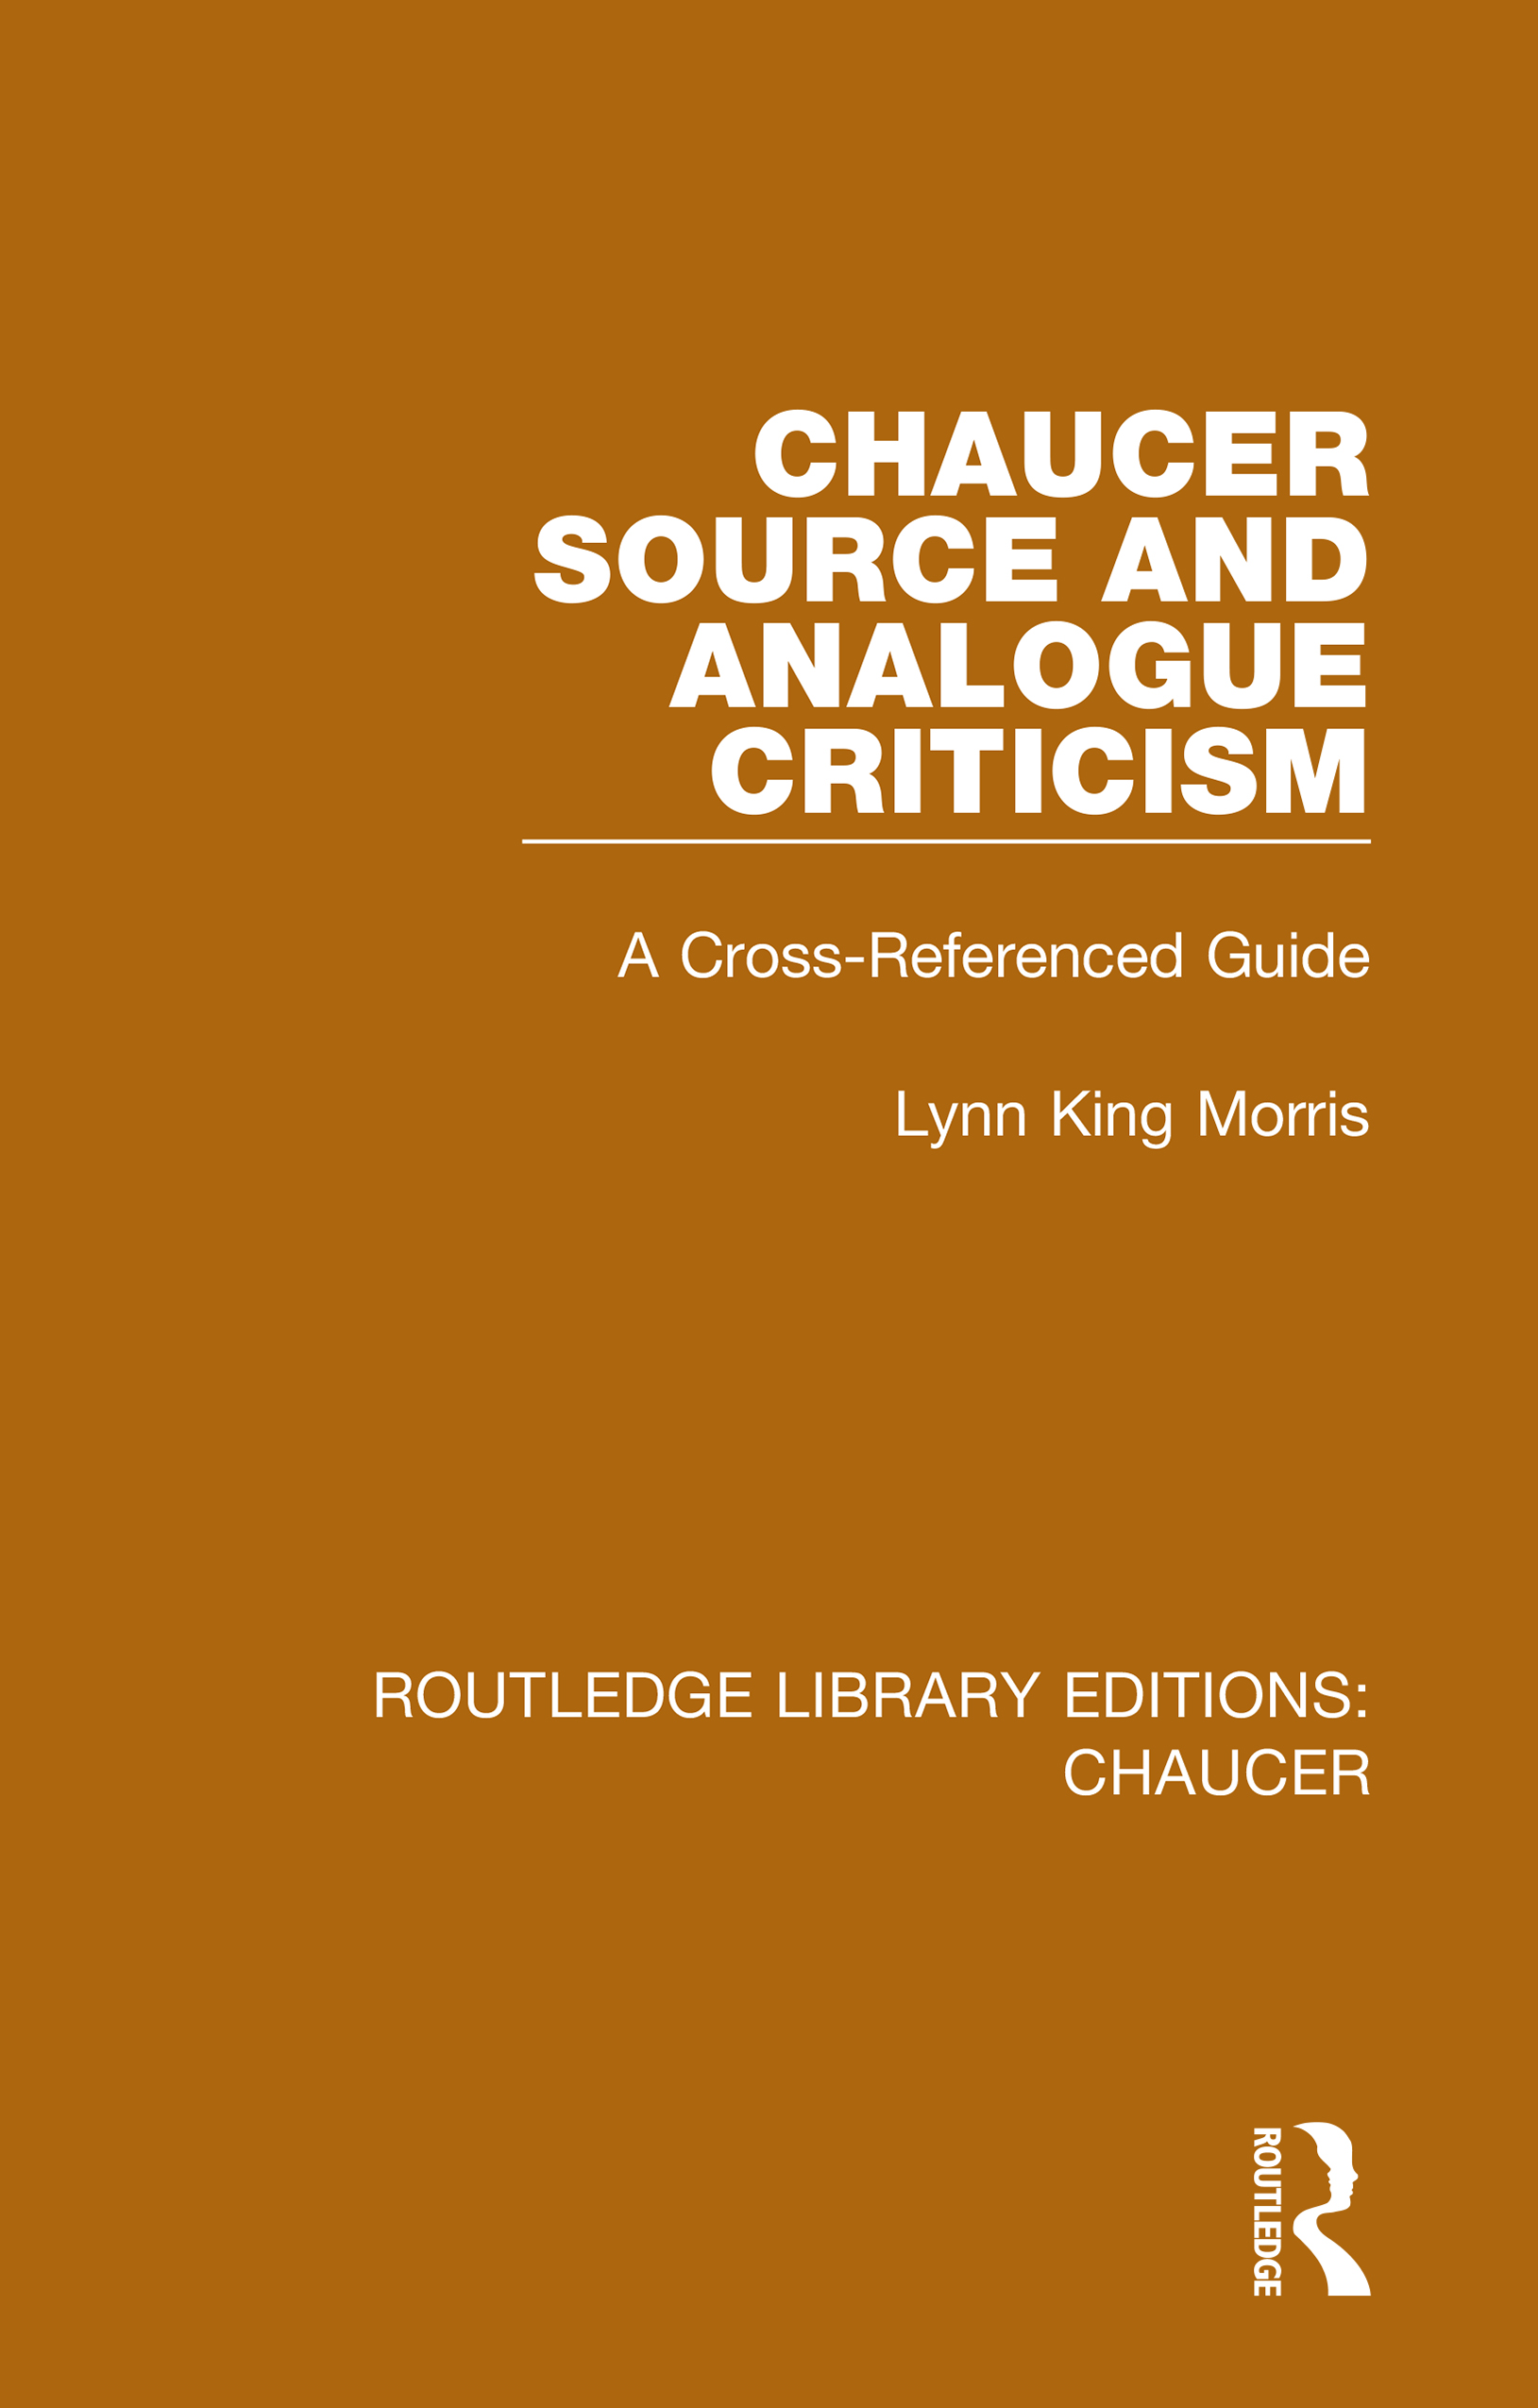 Chaucer Source and Analogue Criticism: A Cross-Referenced Guide book cover